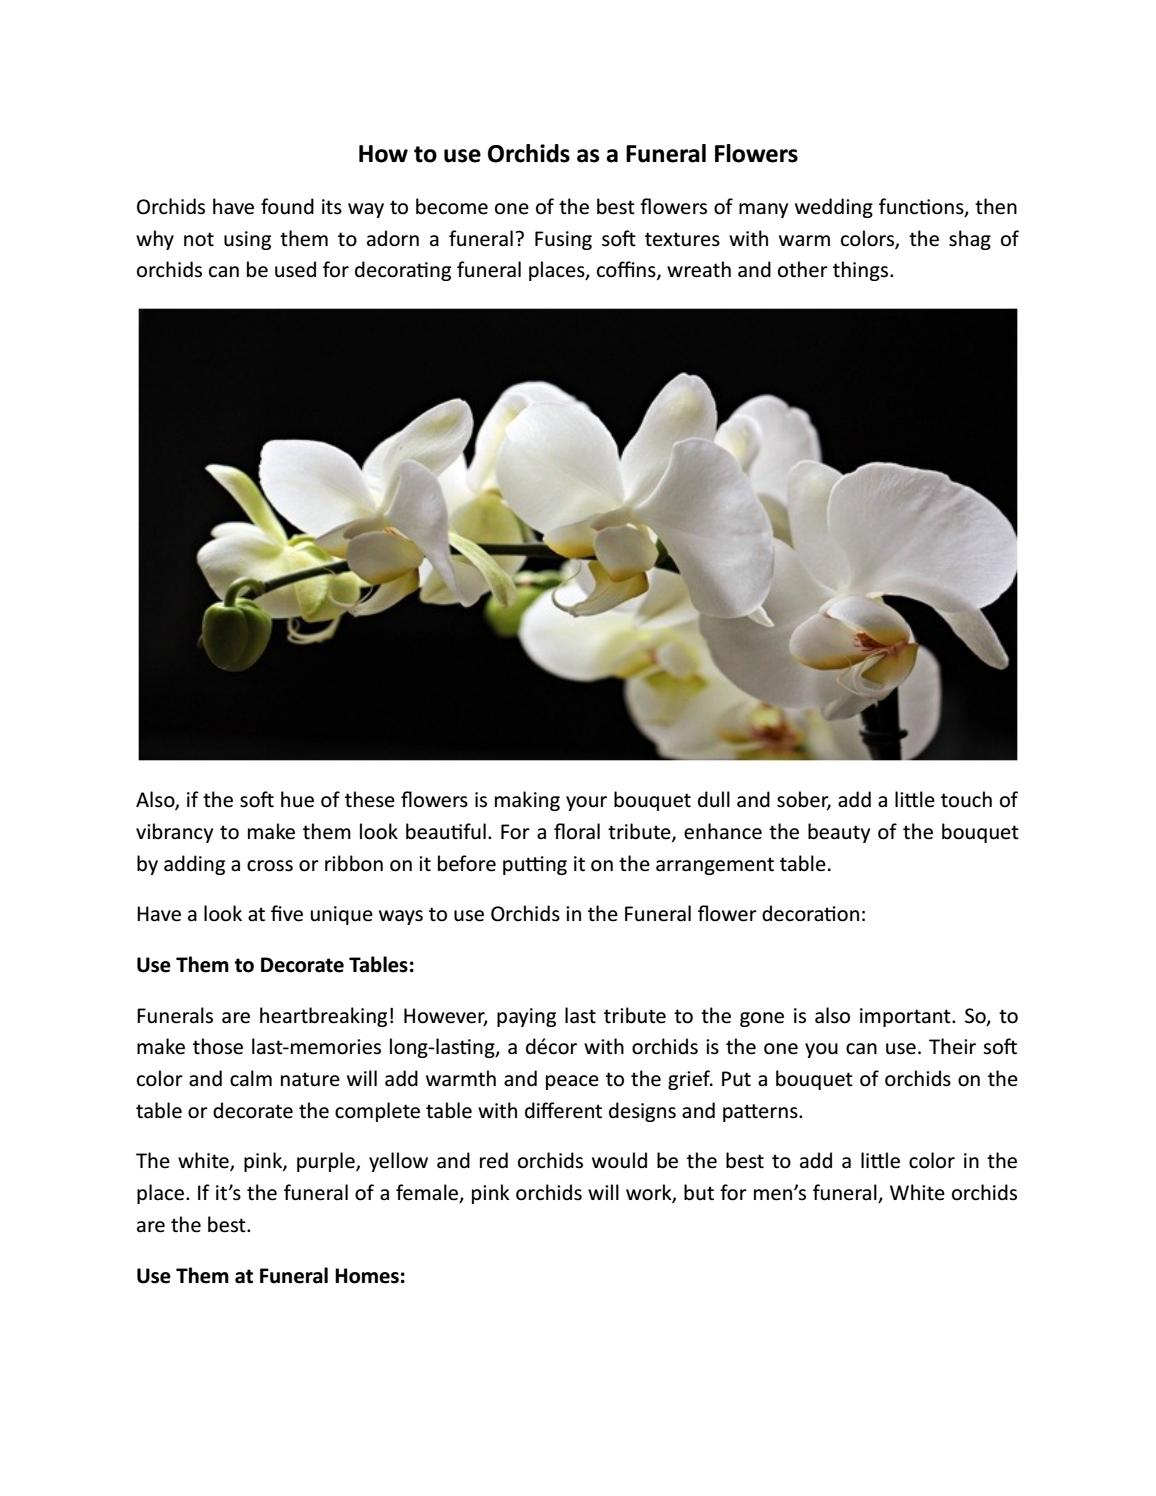 How To Use Orchids As A Funeral Flowers By Flowersandsympathyfl Issuu